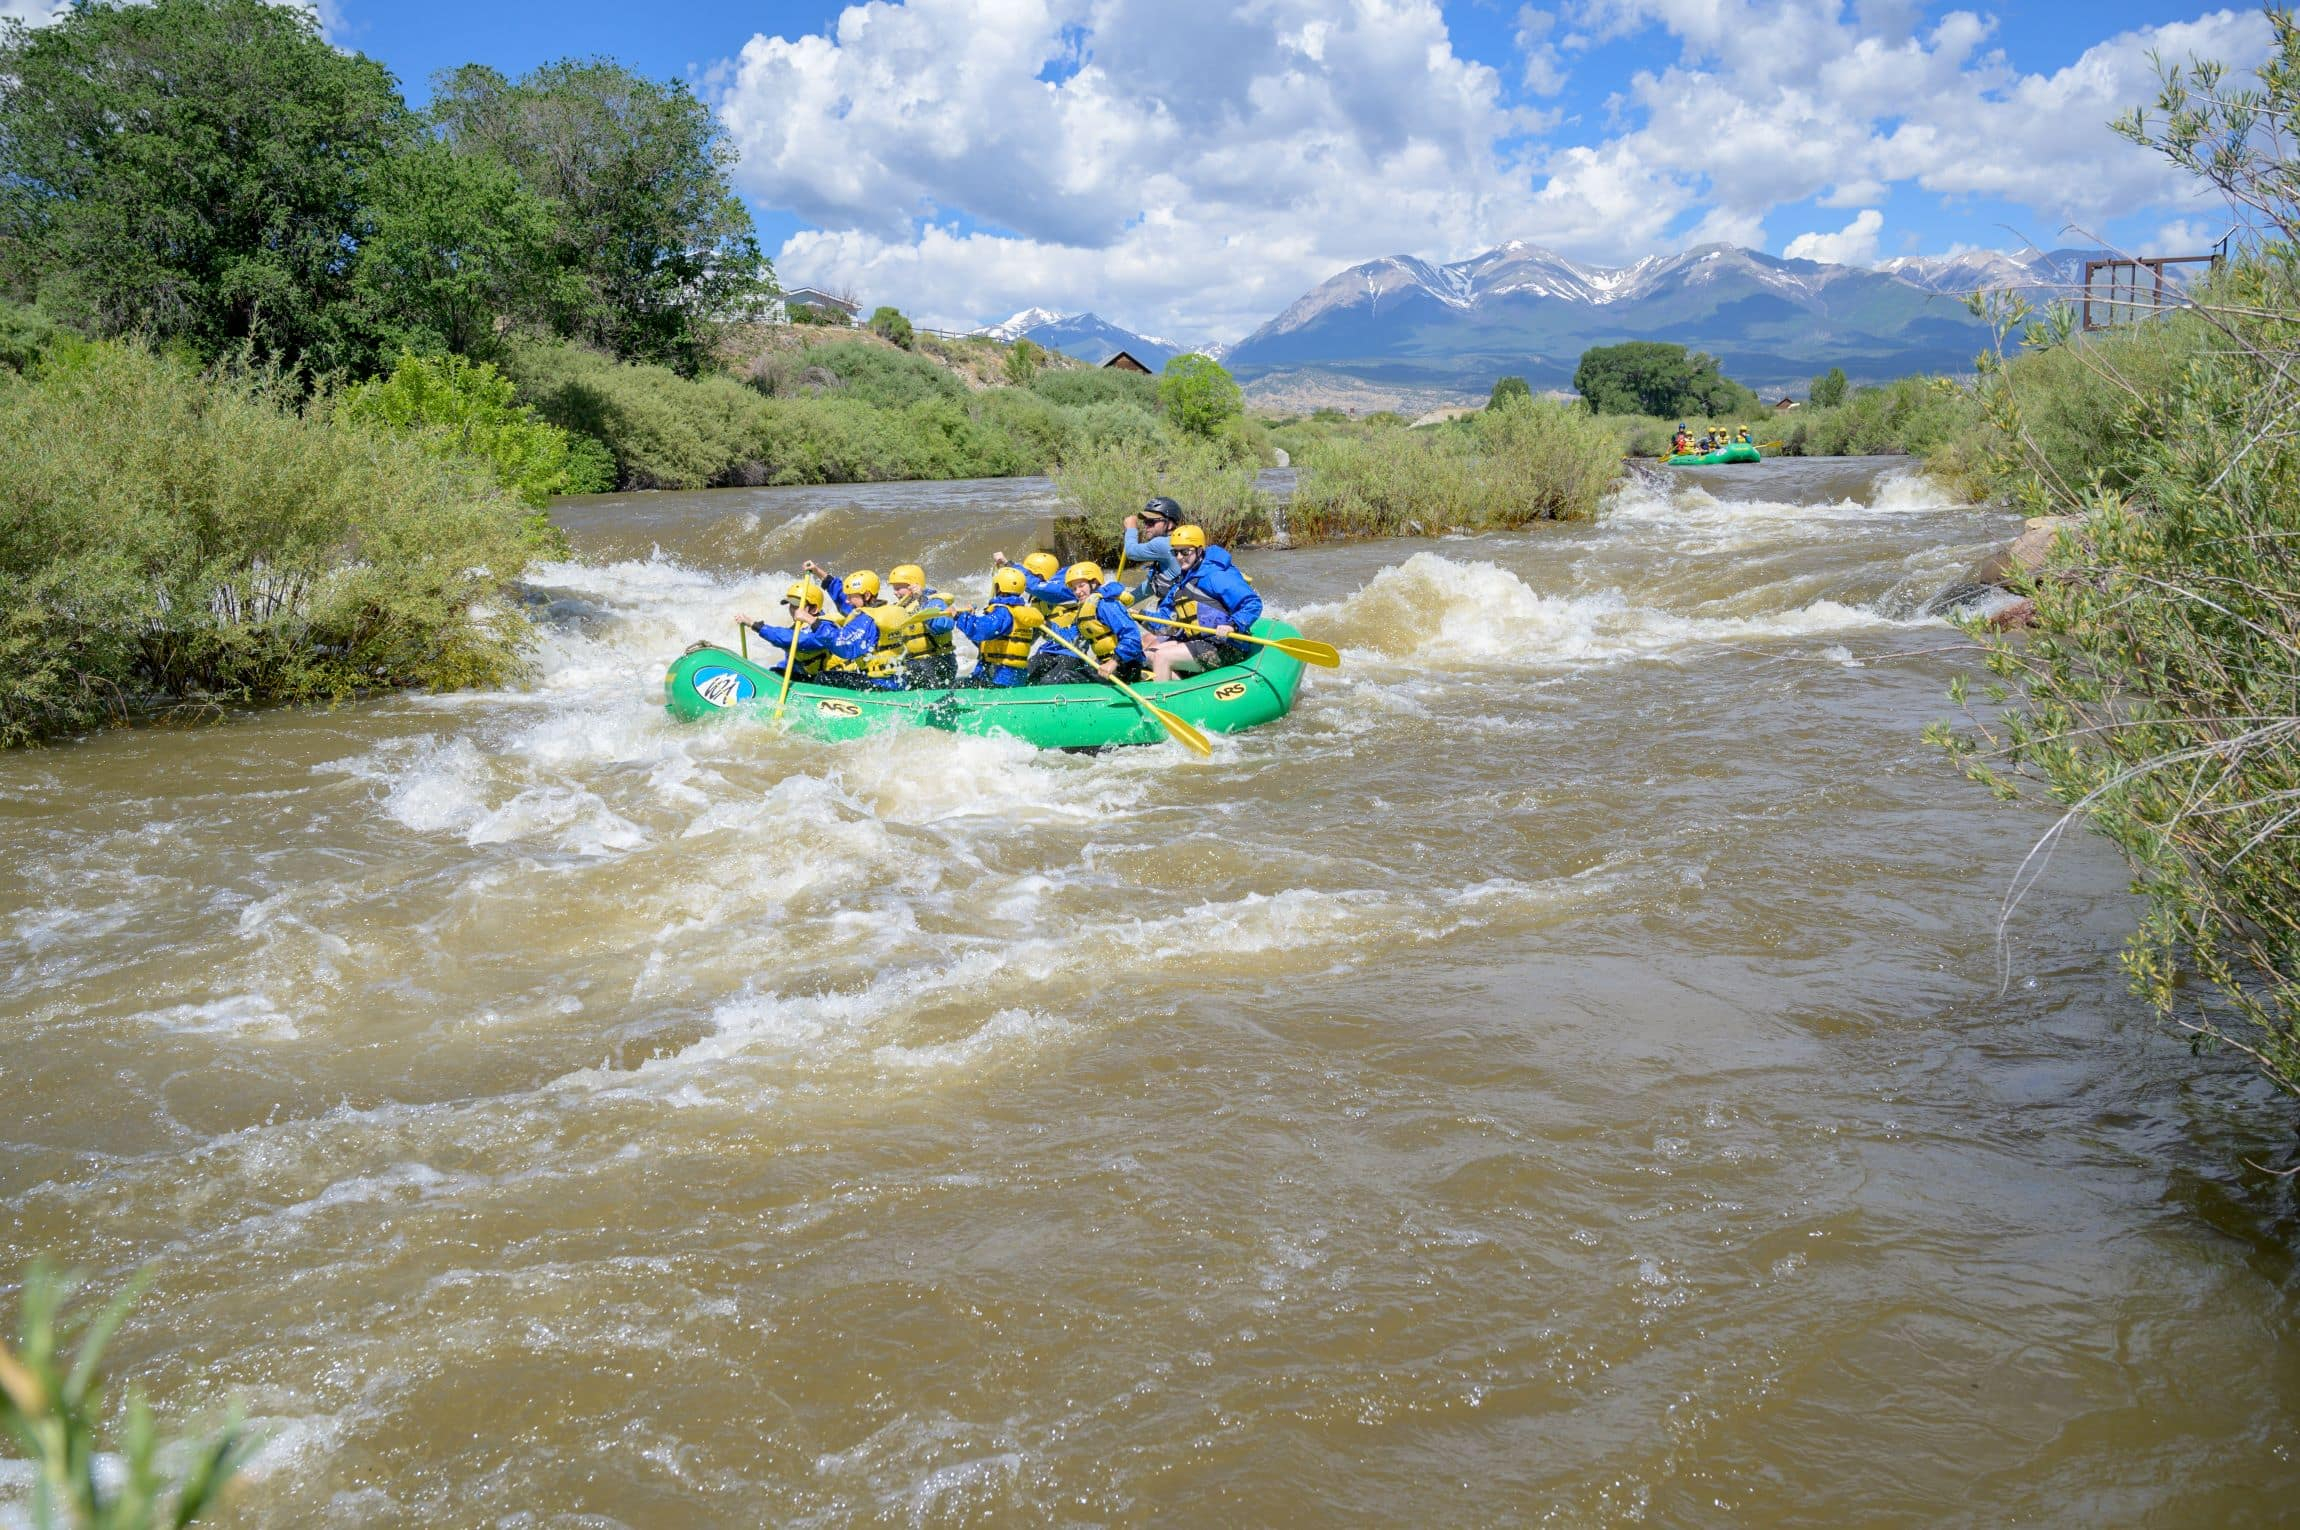 Rafting downstream on a teen adventure program in the rocky mountains